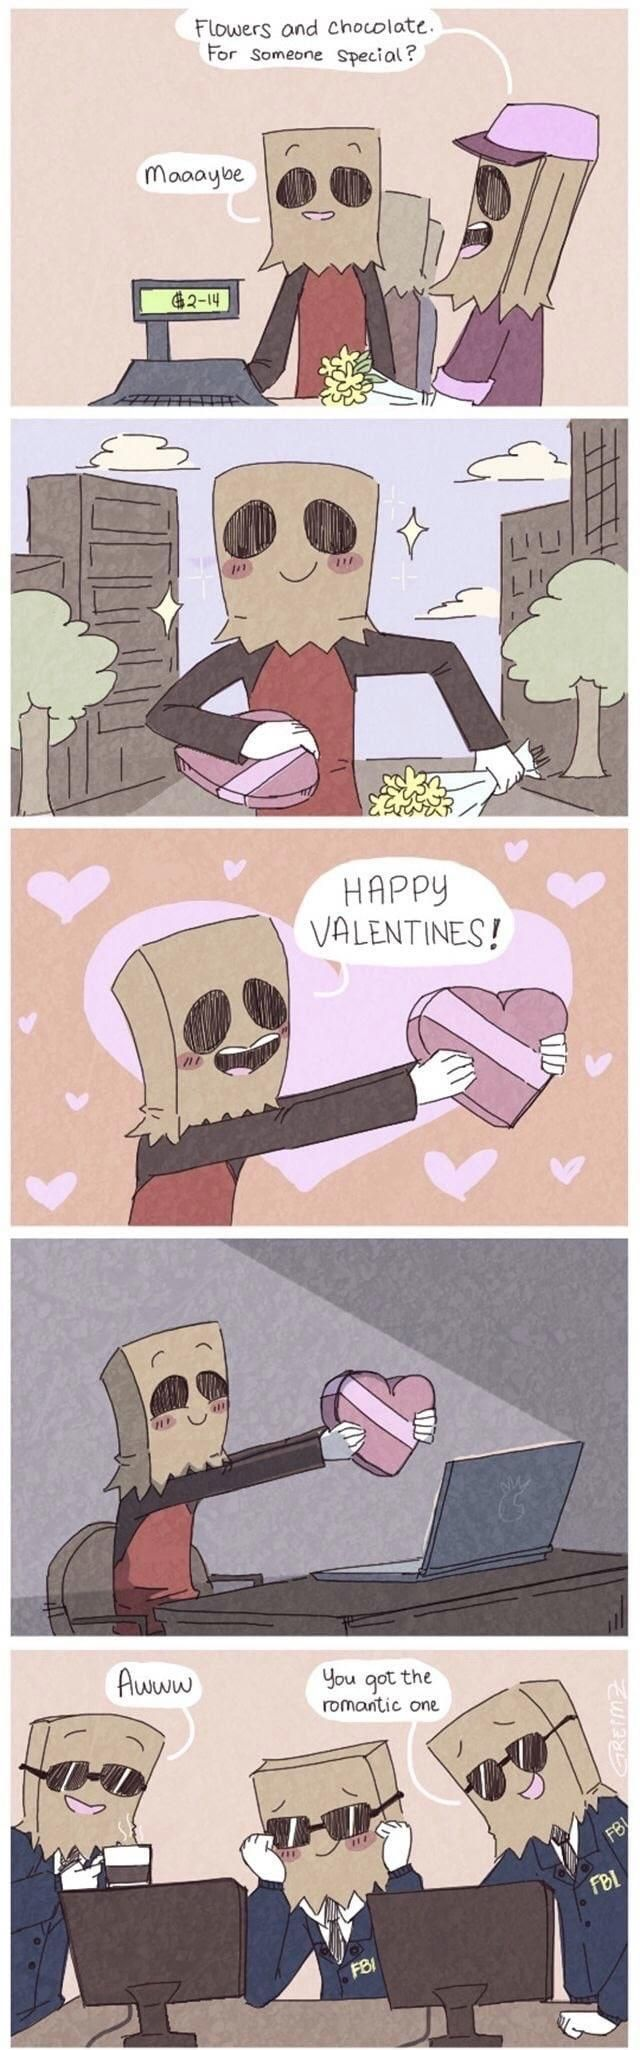 With Valentines right around the corner I wish everyone a good day!